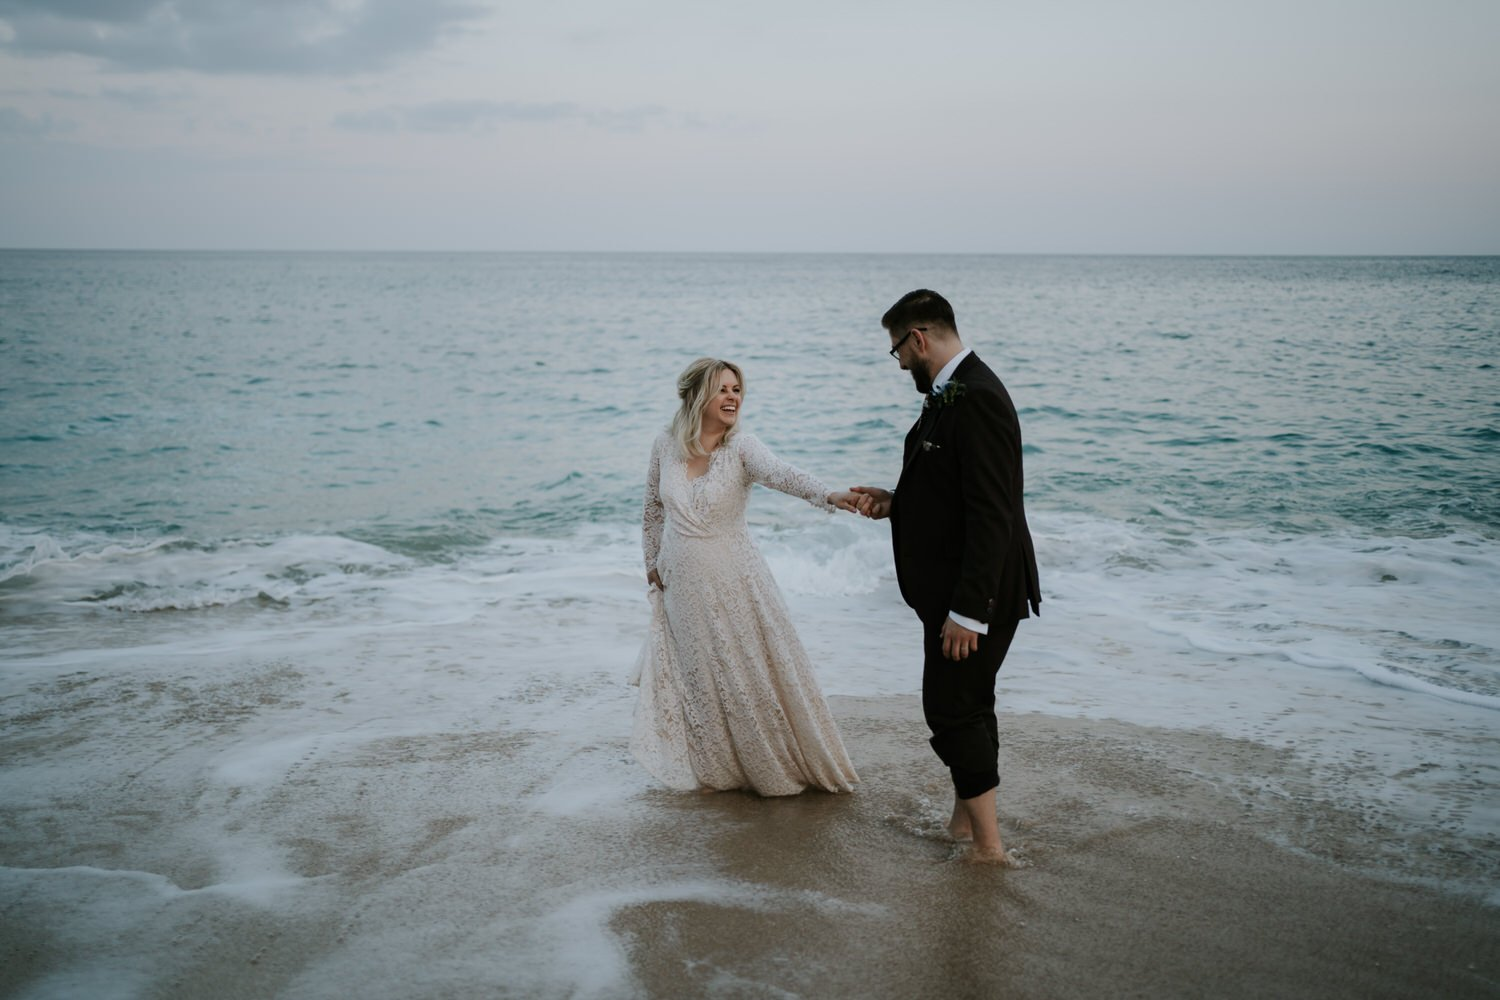 Boho Cornwall Elopement - Couple elope to Cornwall and have fun in the sea at Porthcurno Beach